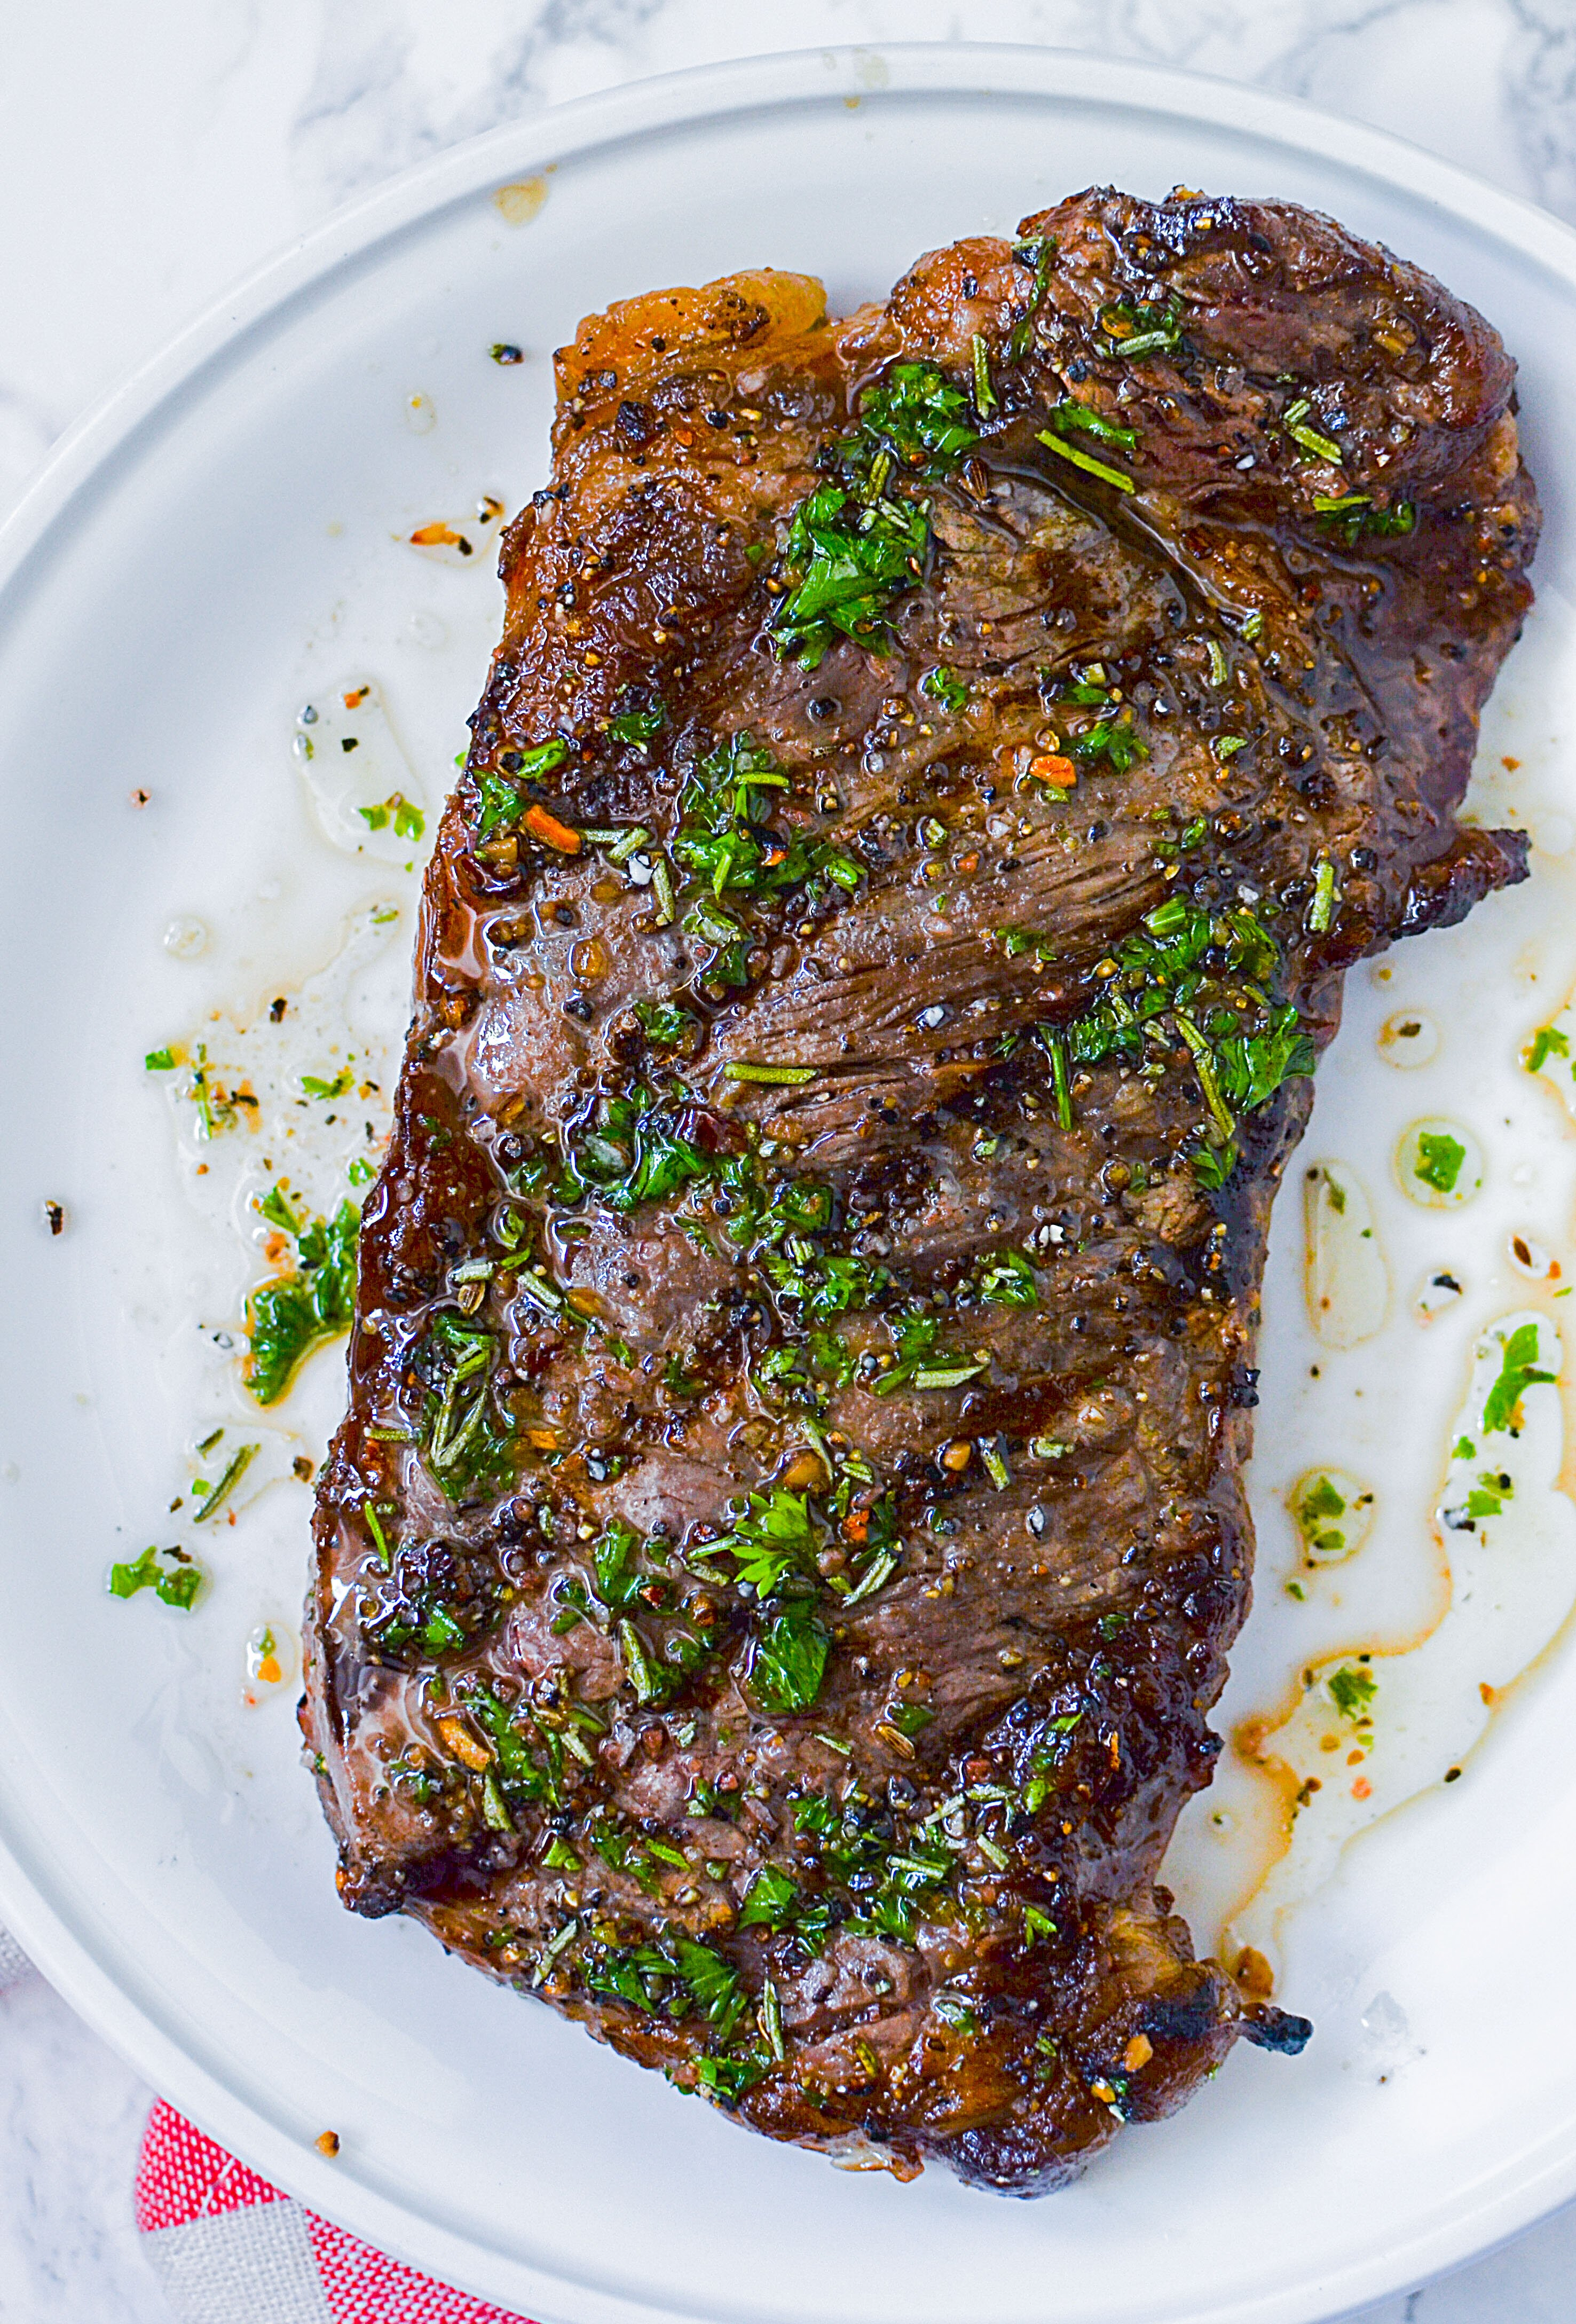 Tell me how to marinate steaks from red fish